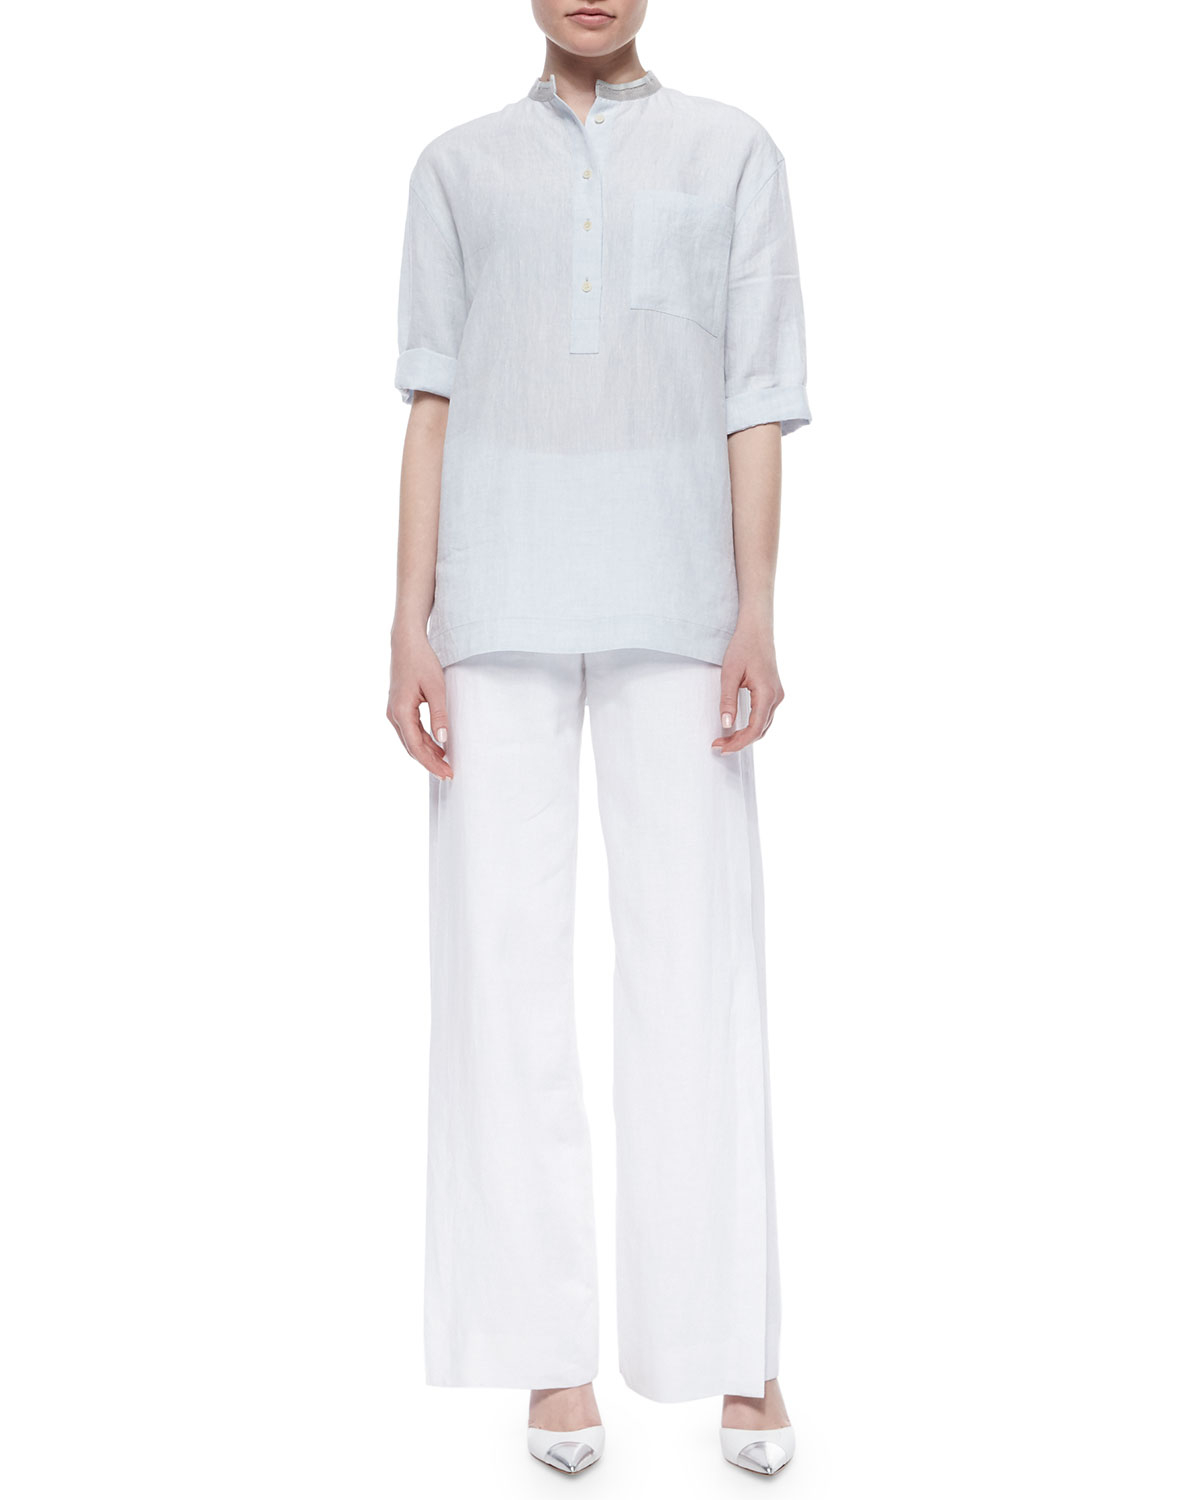 Lafayette 148 new york Lined Wide-leg Linen Pants in White | Lyst